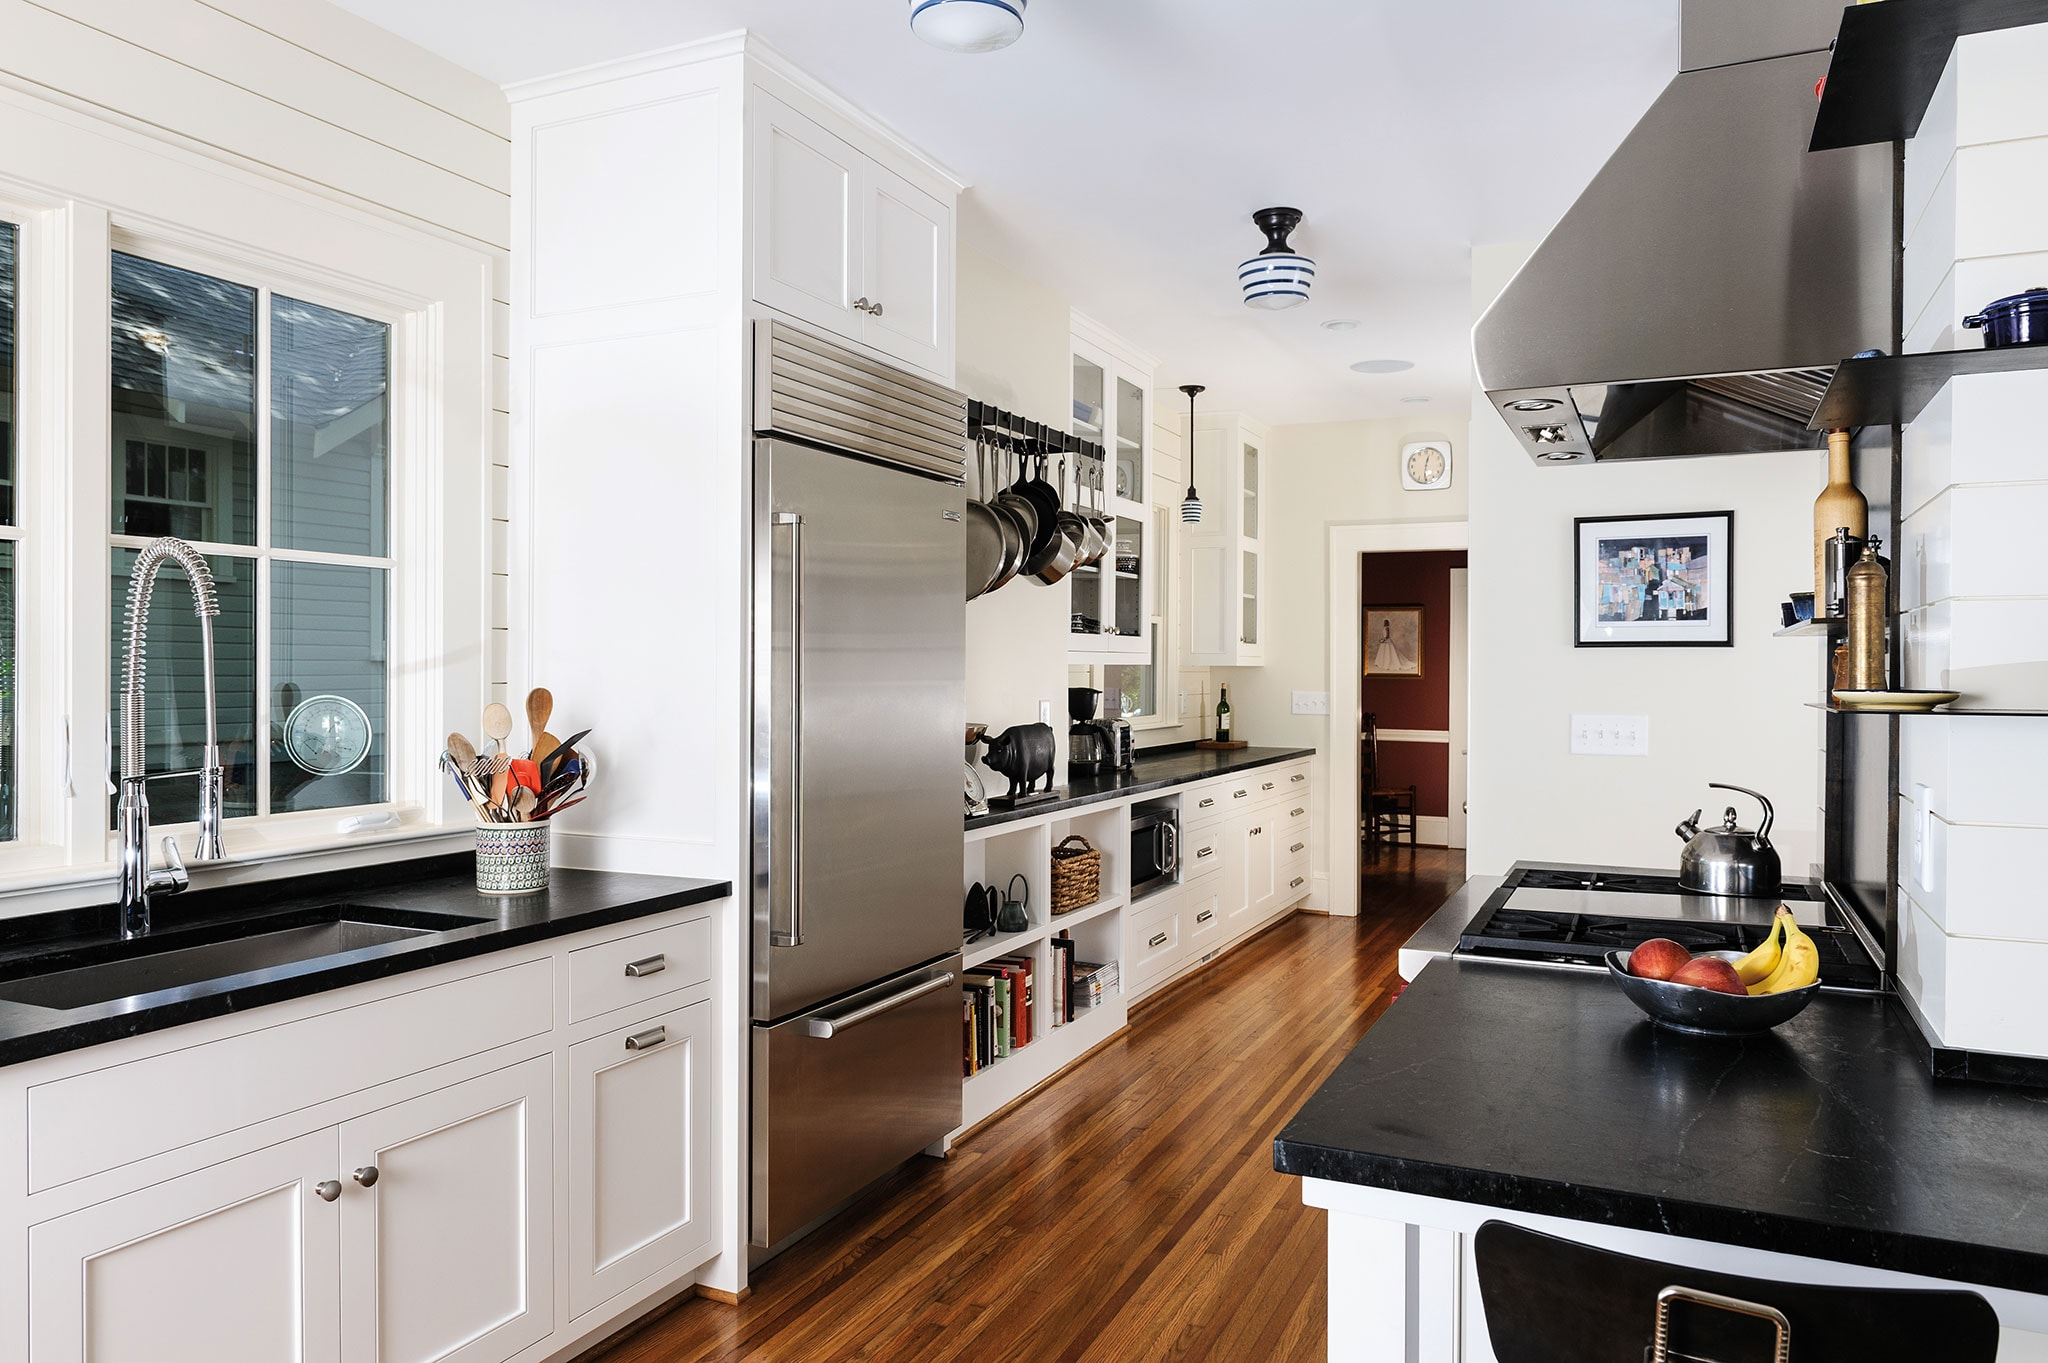 Award Winning Kitchen Design Adorable Kitchen Gallery  Inspiration  Subzero & Wolf Design Ideas